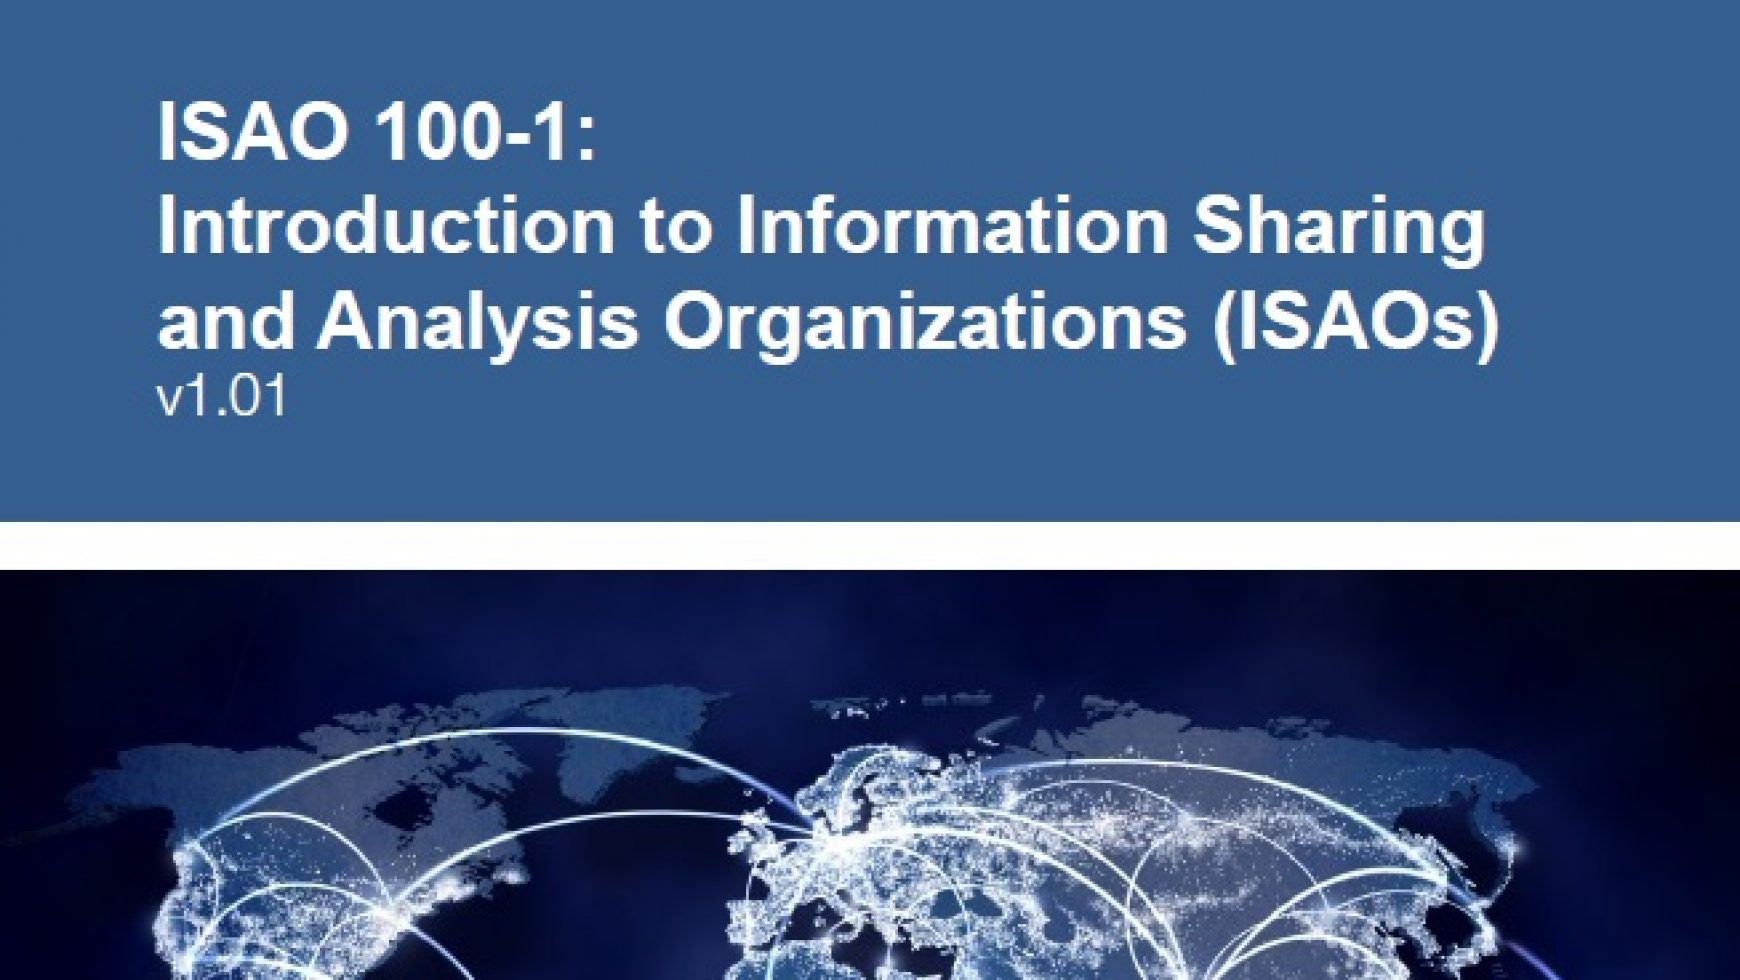 ISAO 100-1: Introduction to Information Sharing and Analysis Organizations (ISAOs)